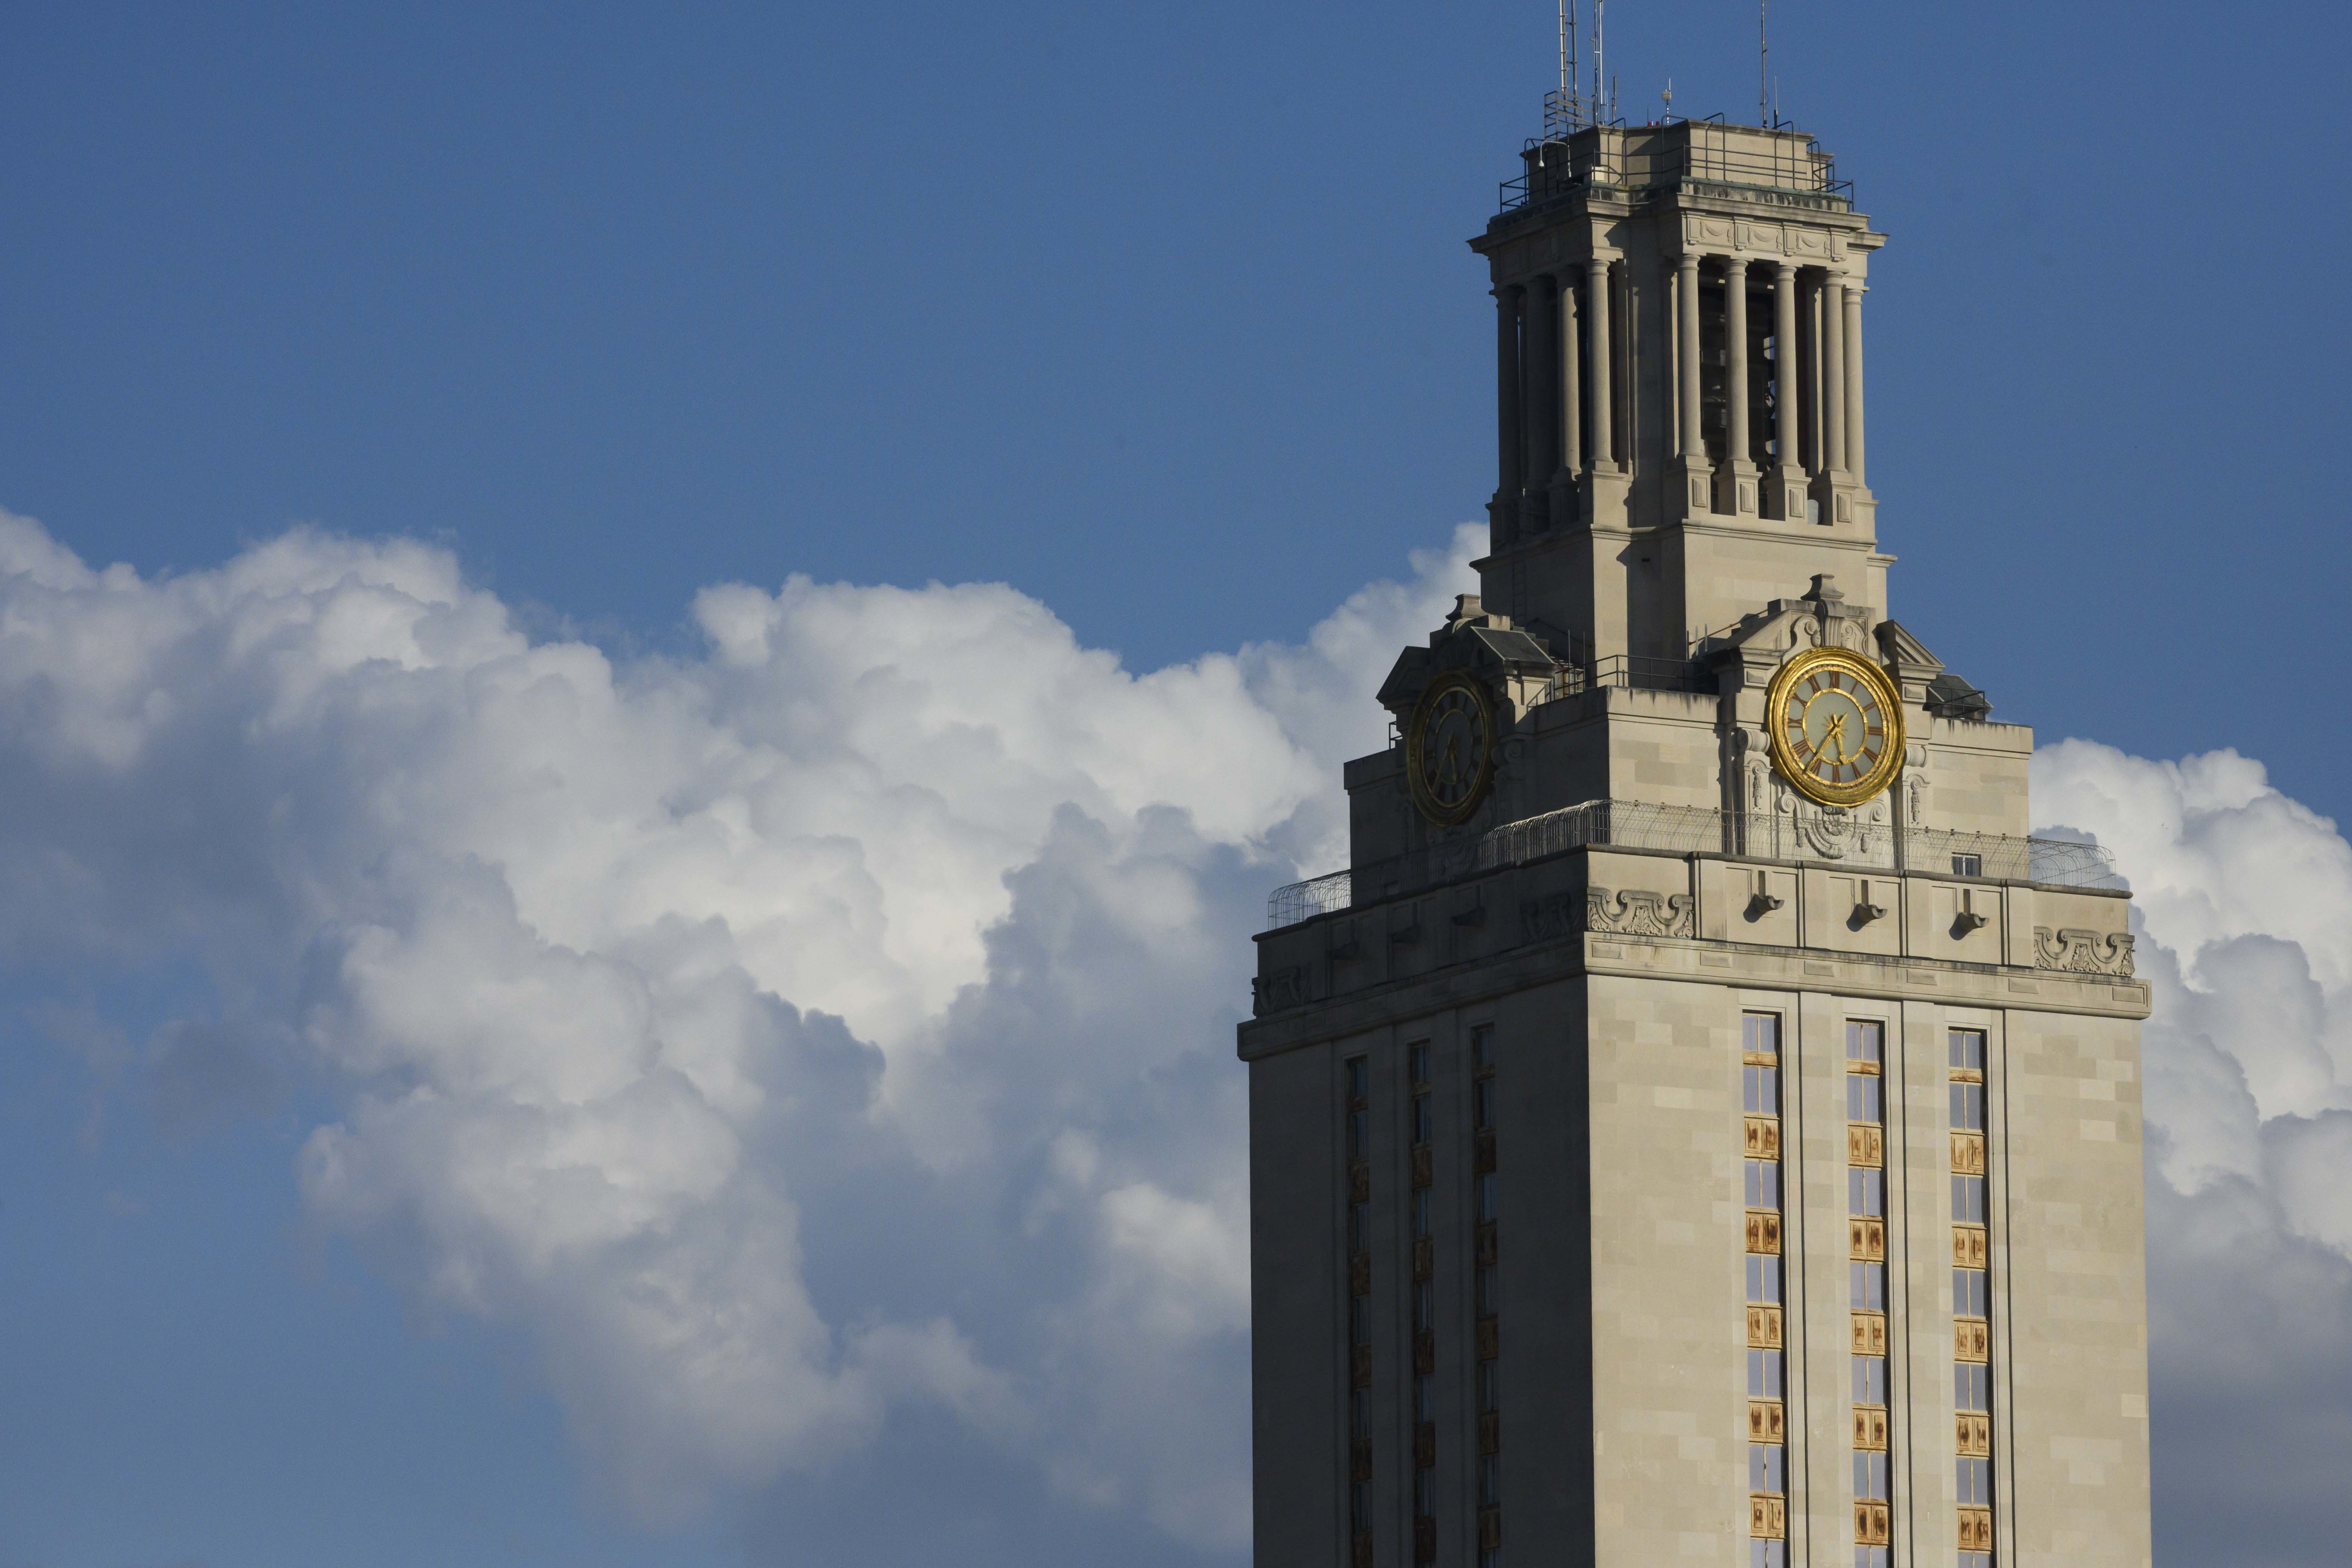 The UT Austin Tower with a blue sky and clouds in the background.